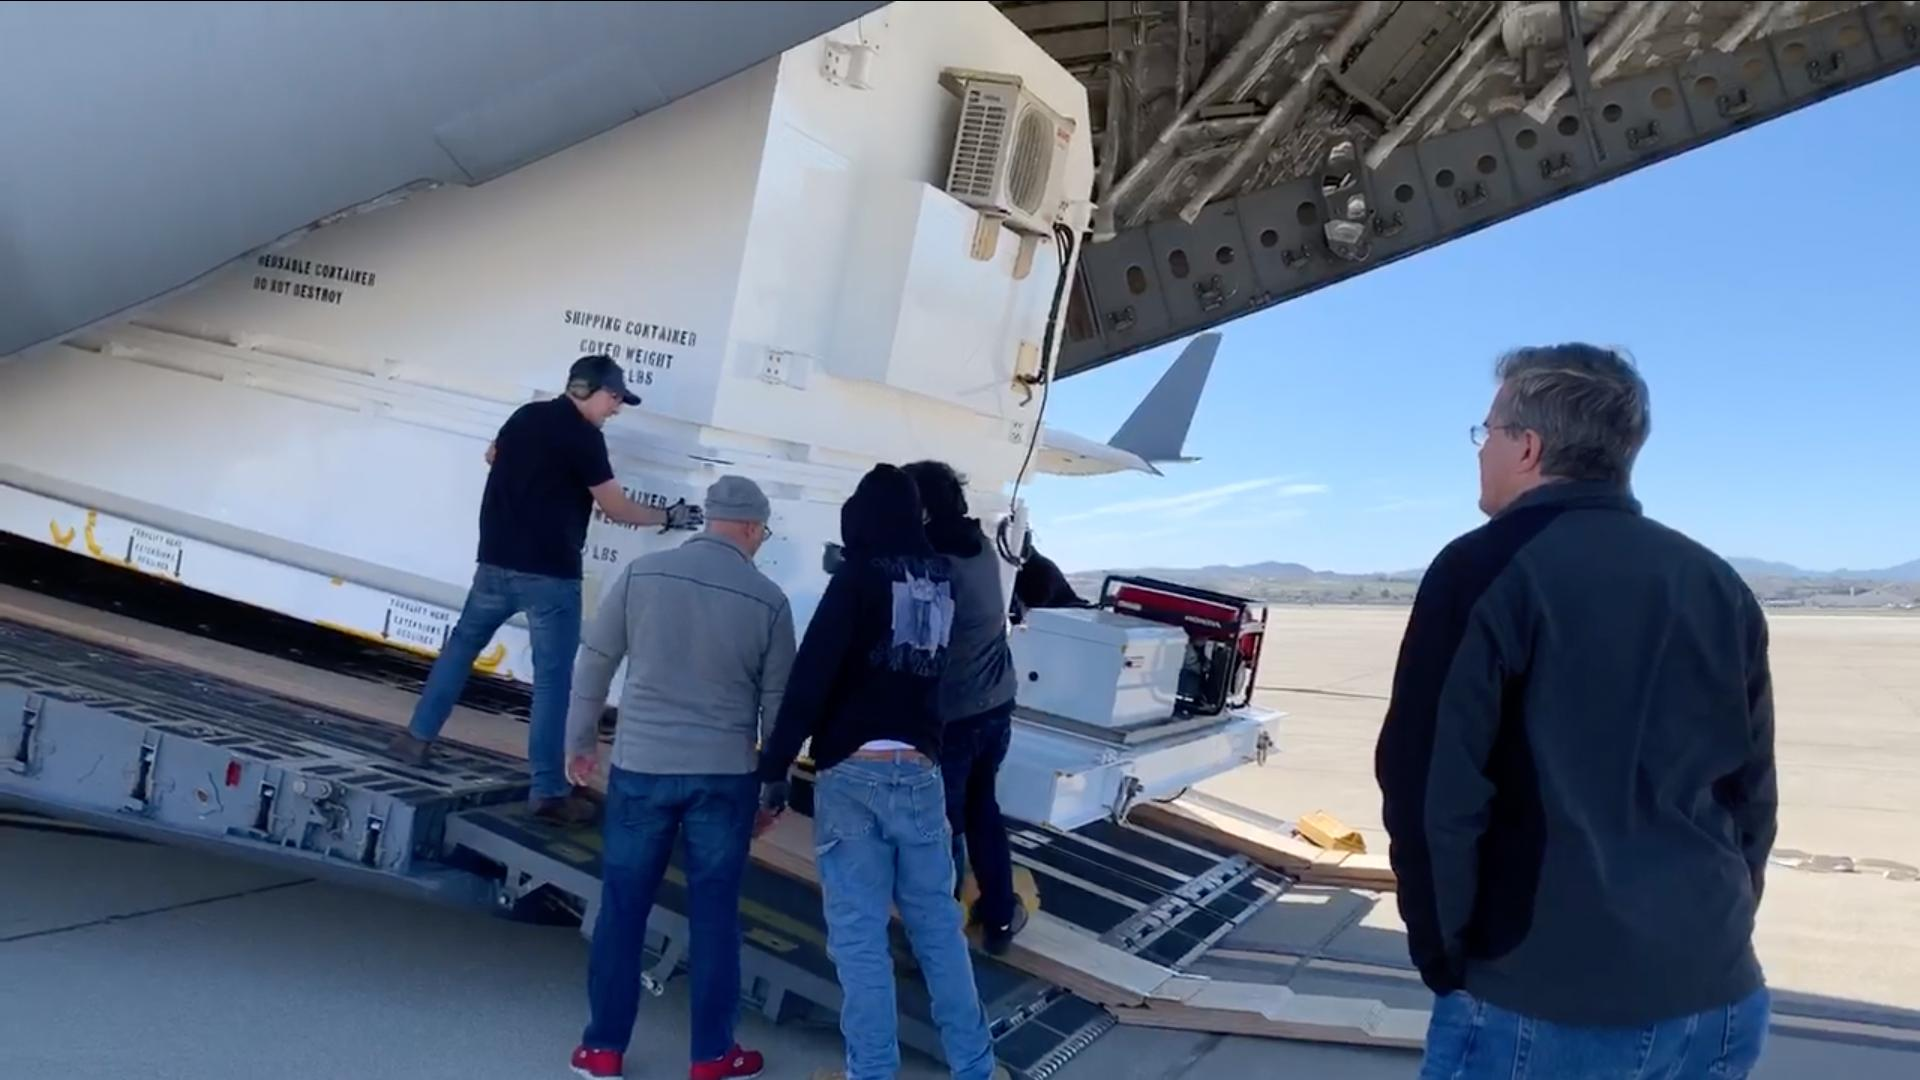 On Feb. 11, 2020, Mars 2020 Assembly, Test and Launch Operations Manager David Gruel watched as members of his team loaded NASAs next Mars rover onto an Air Force C-17 at March Air Reserve Base in Riverside, California.